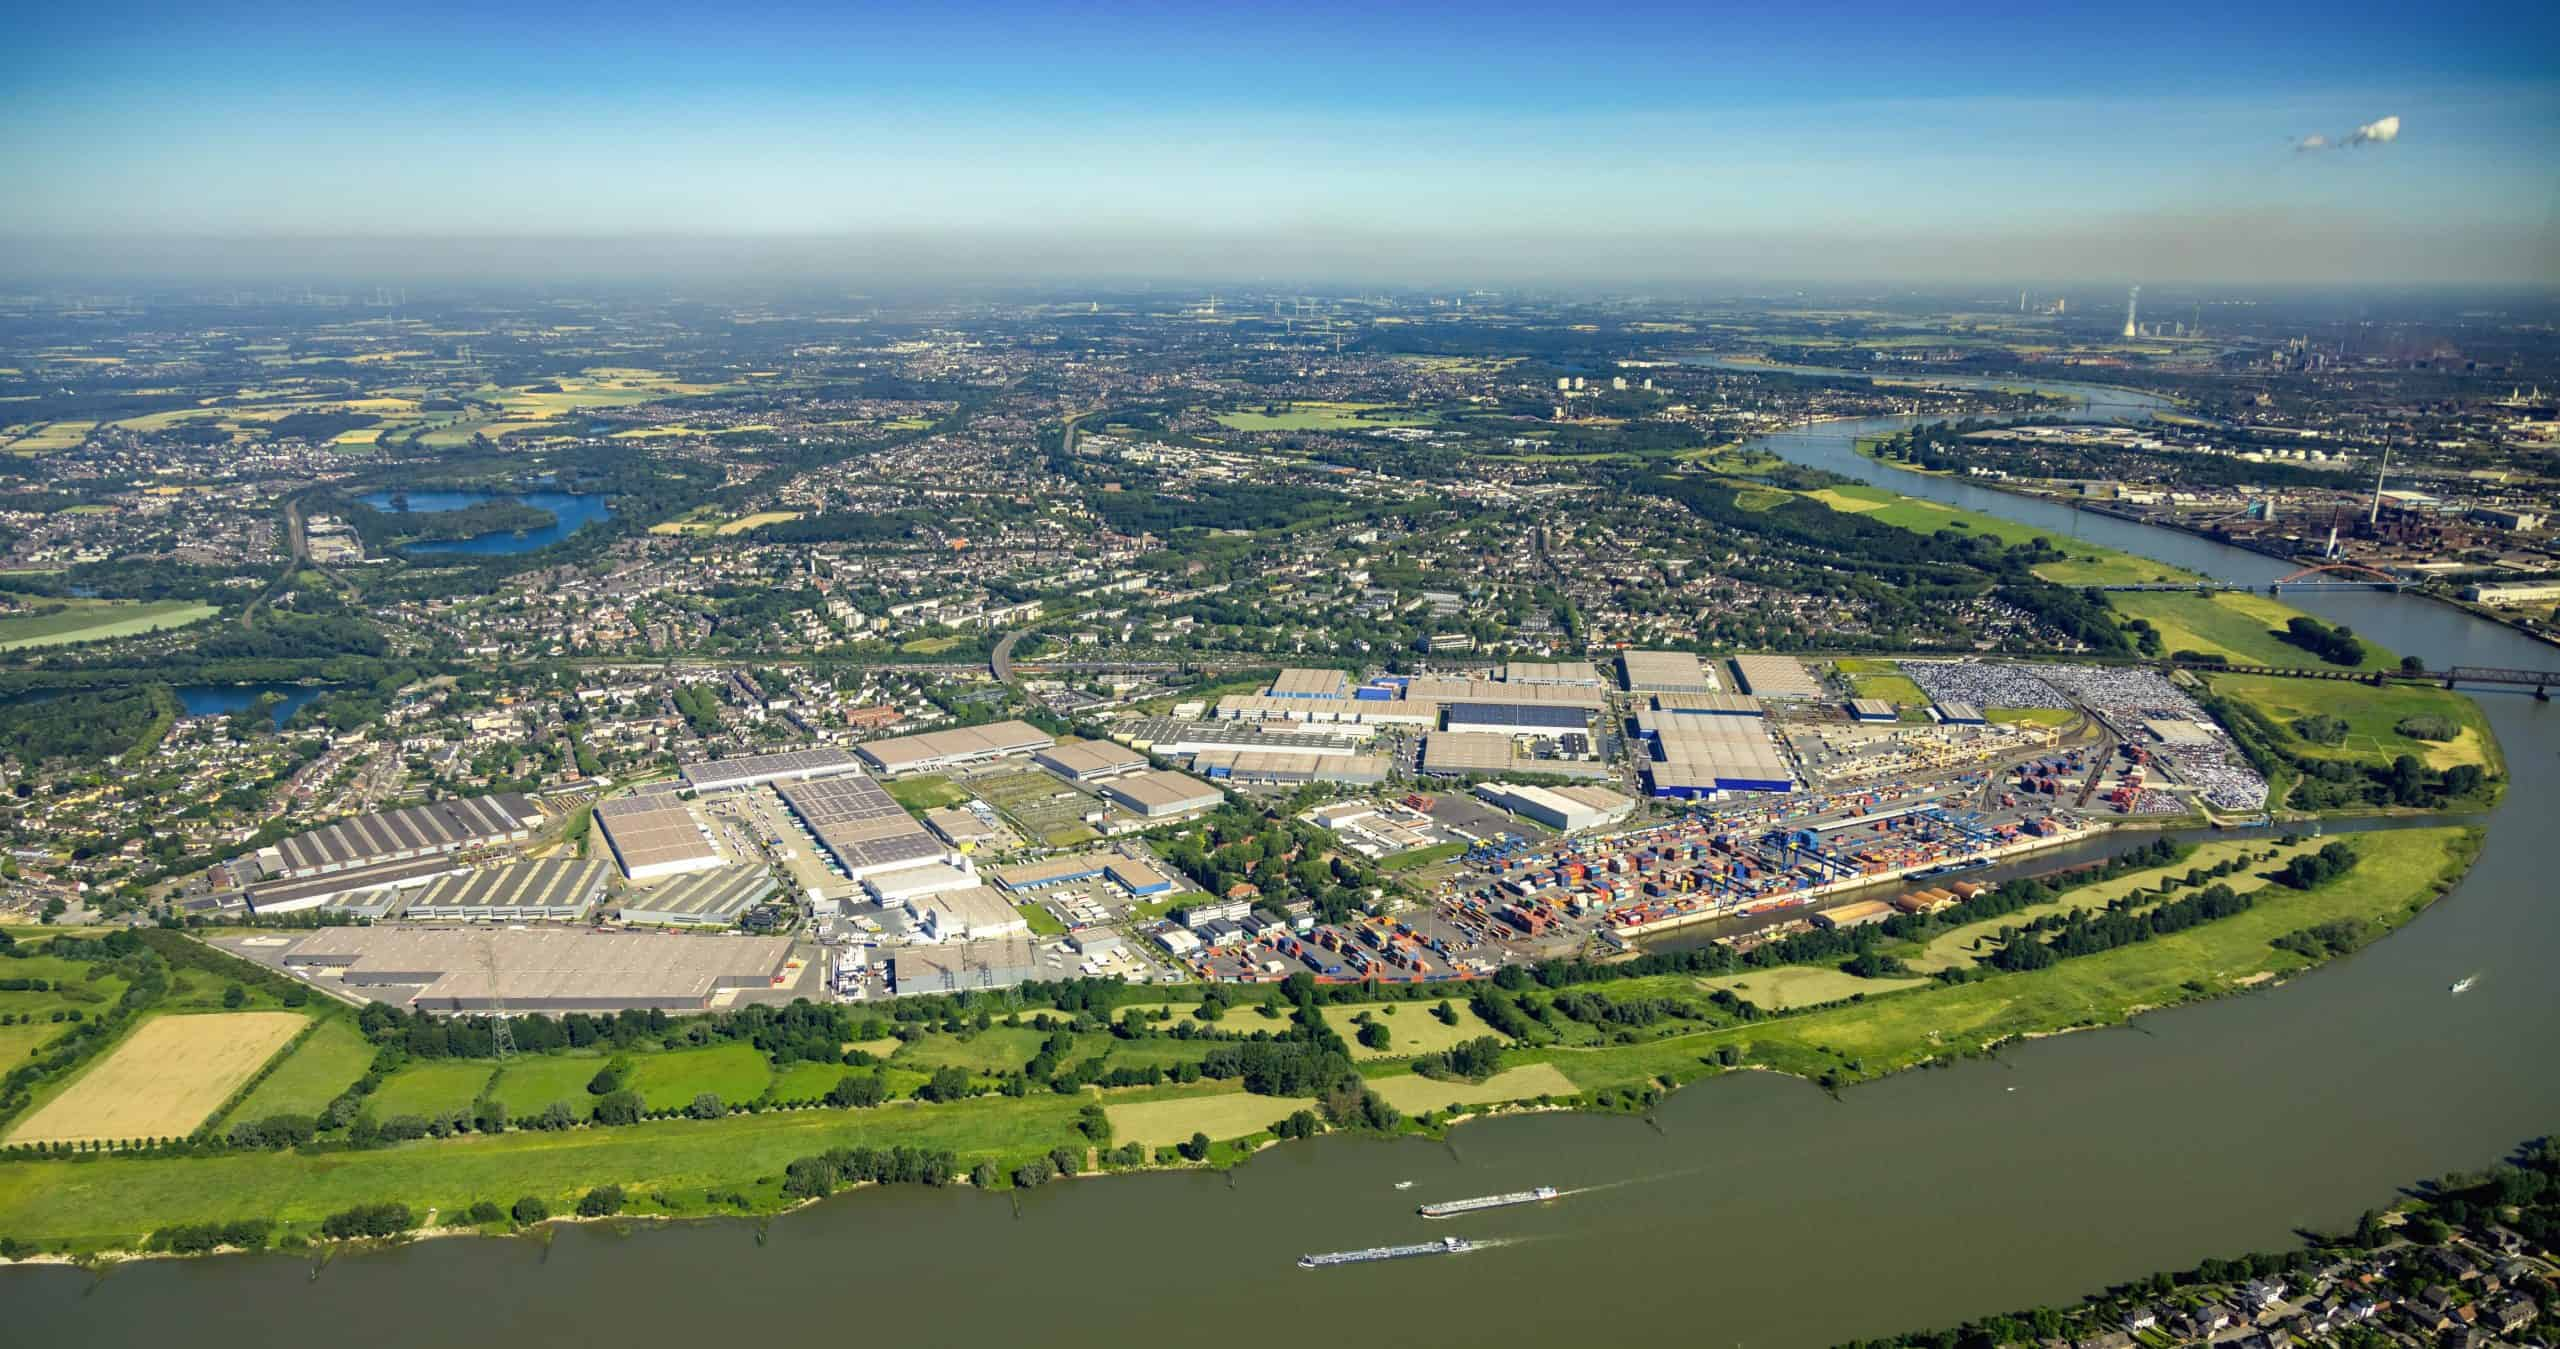 Port of Duisburg sees slight drop in container volumes